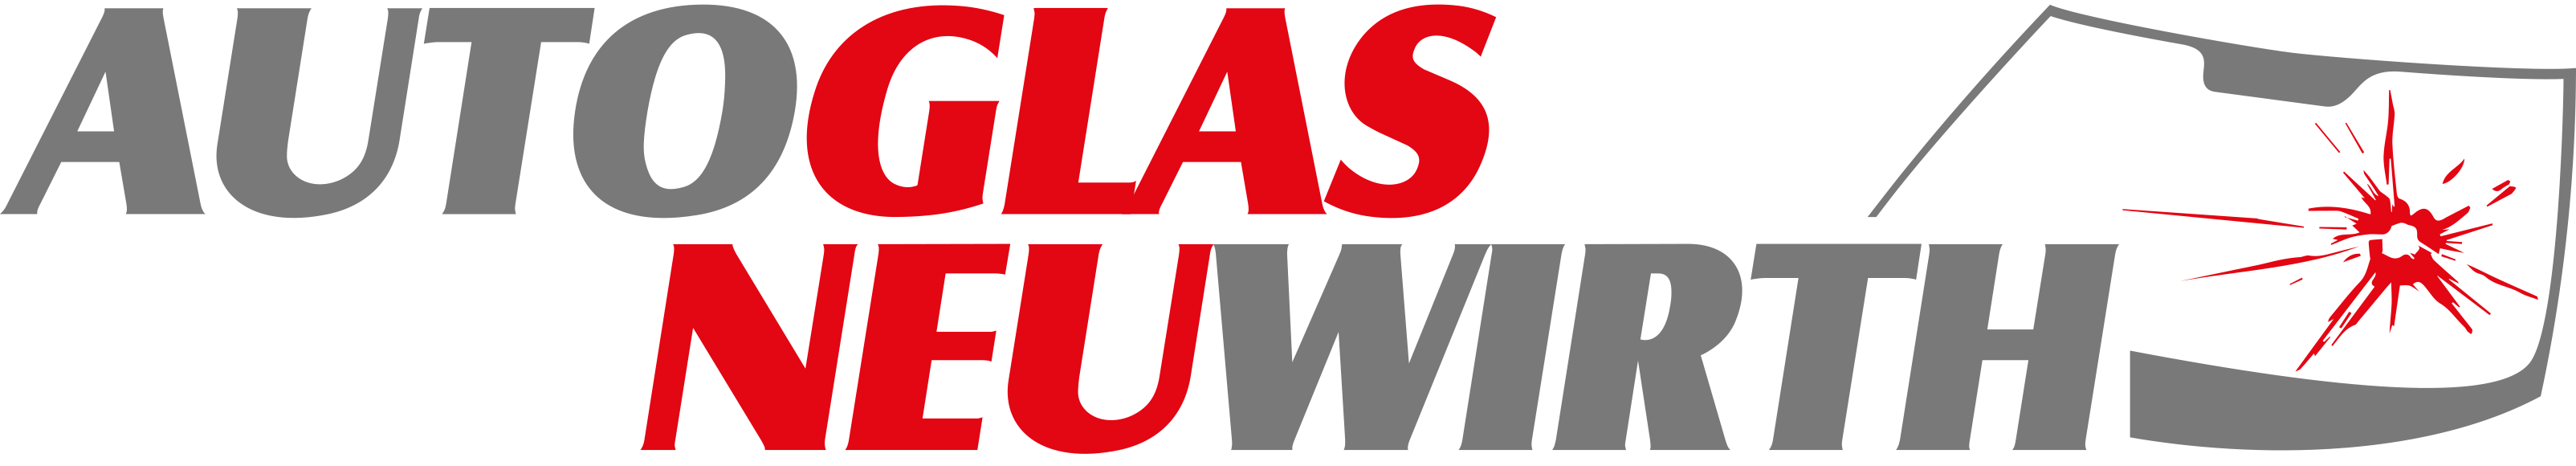 Logo Autoglas Neuwirth in Wels